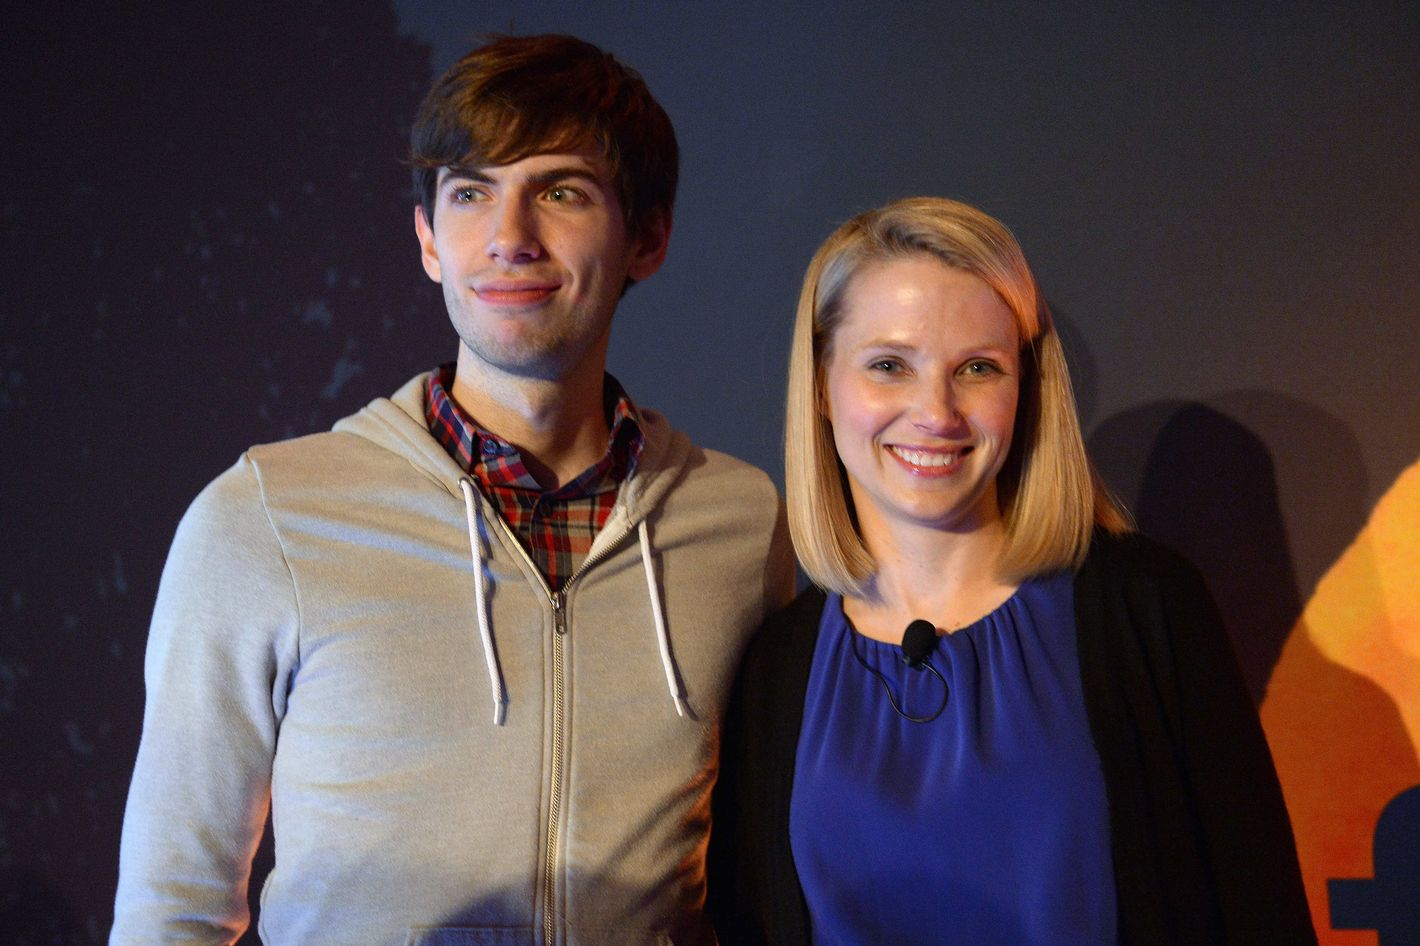 Yahoo CEO Marissa Mayer and Tumblr founder David Karp pose for a photo during an annoucement that Yahoo acquired the Tumblr blogging site, in New York, May 20, 2013.